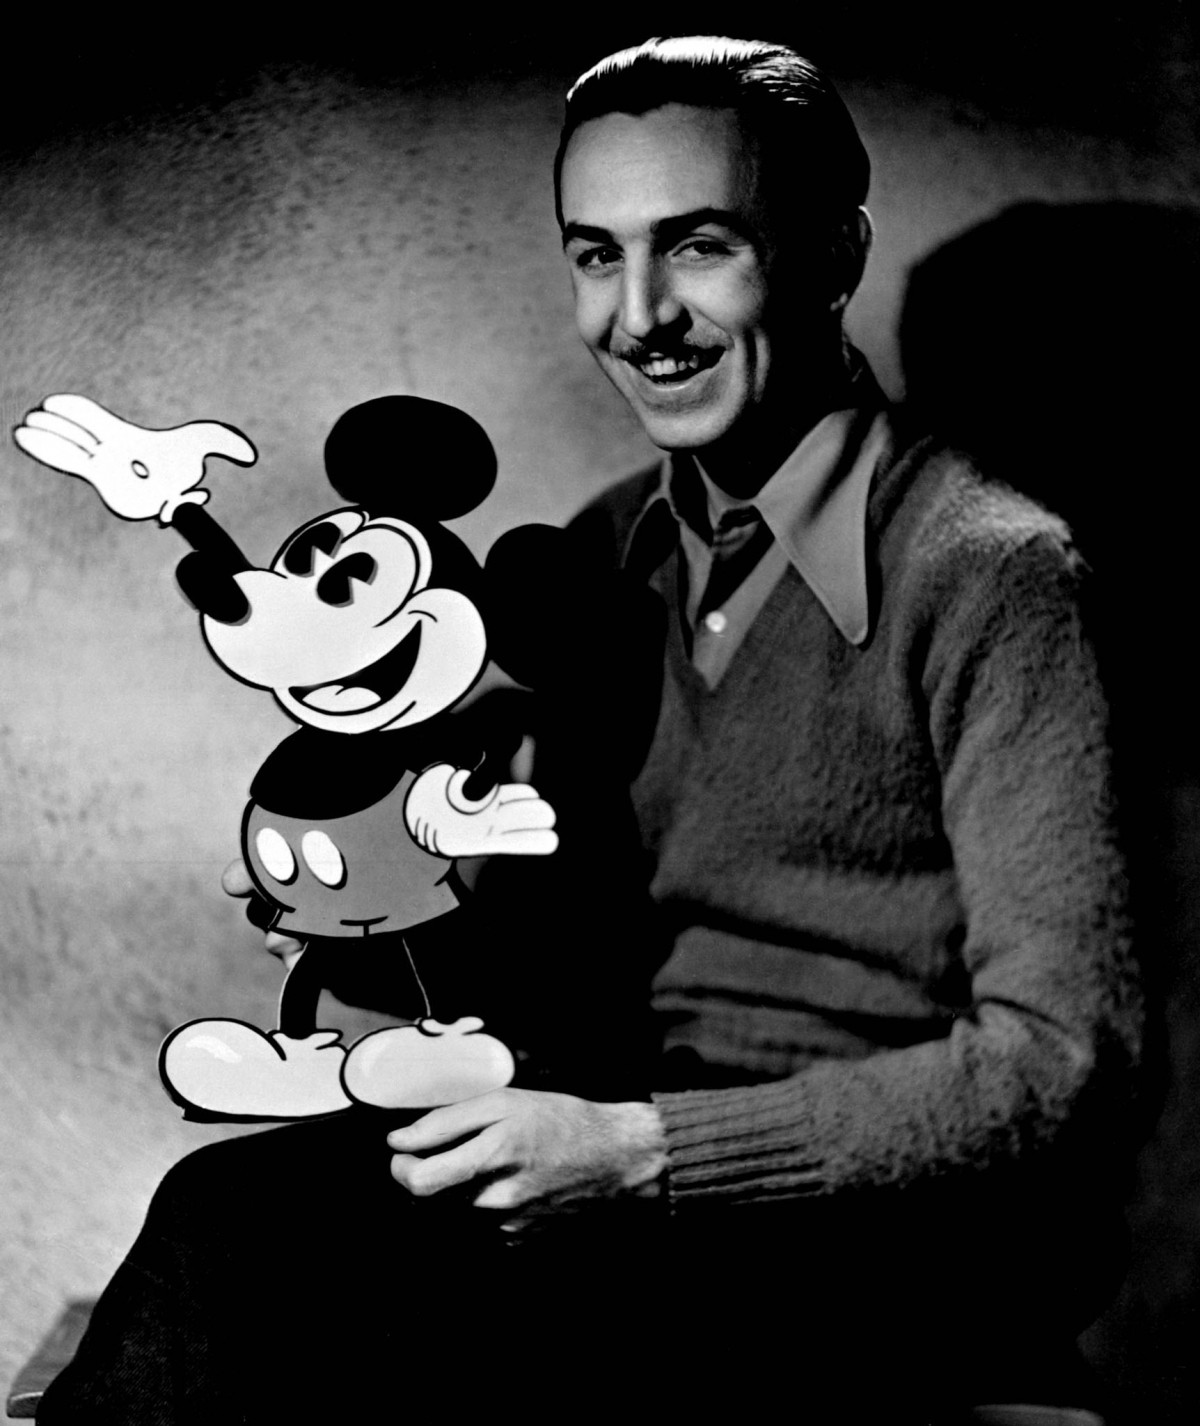 a description of the walt disney companys history from 1923 to 2001 The company was founded on october 16, 1923 – by brothers walt and roy disney – as the disney brothers cartoon studio, and also operated under the names the walt disney studio and walt disney productions before officially changing its name to walt disney company in 1986 the company grew to establish itself as a leader in the american .